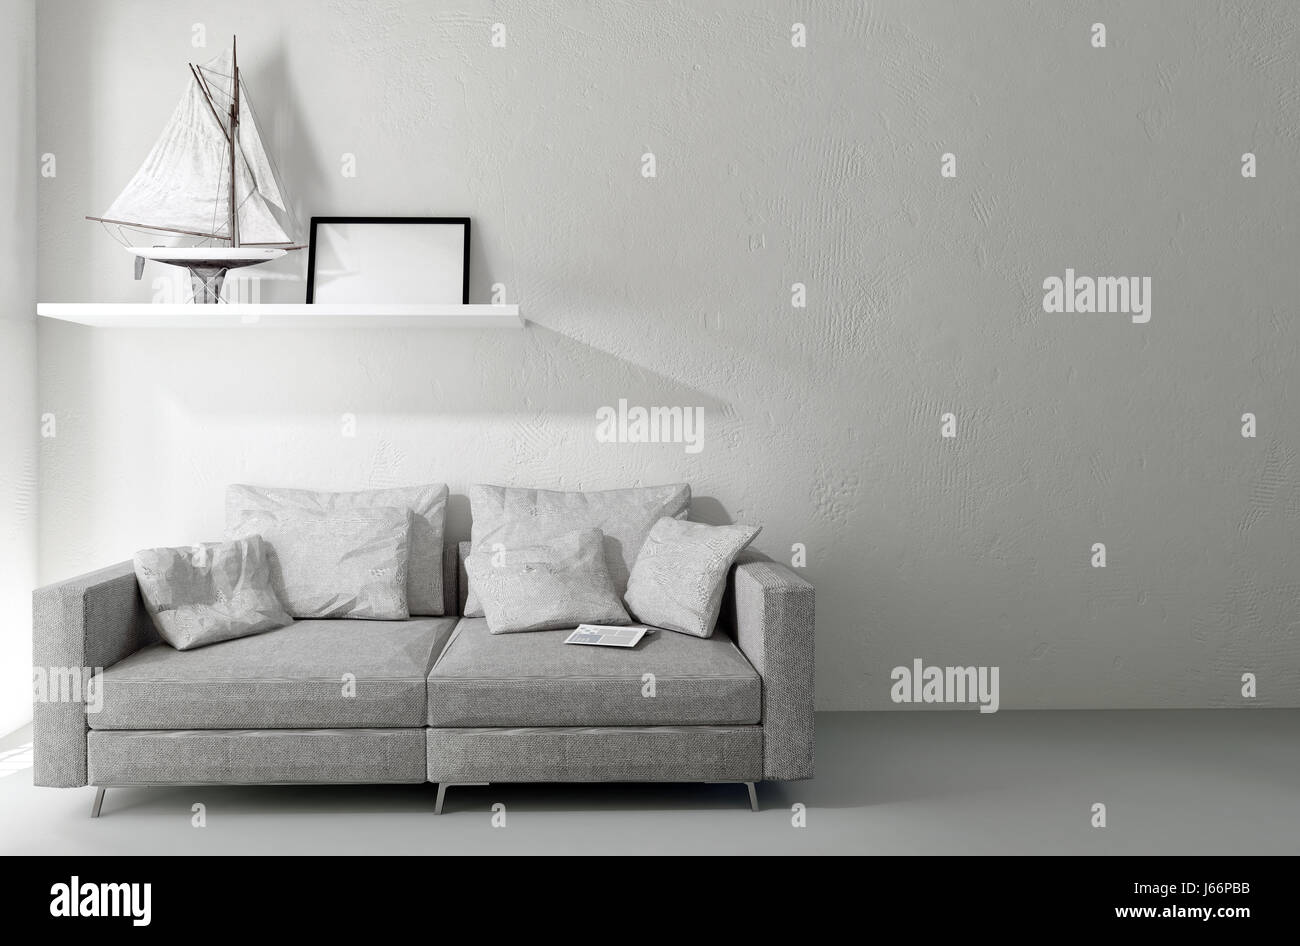 Minimalist living space stock photos minimalist living space stock images alamy - Comfortable beds for small spaces minimalist ...